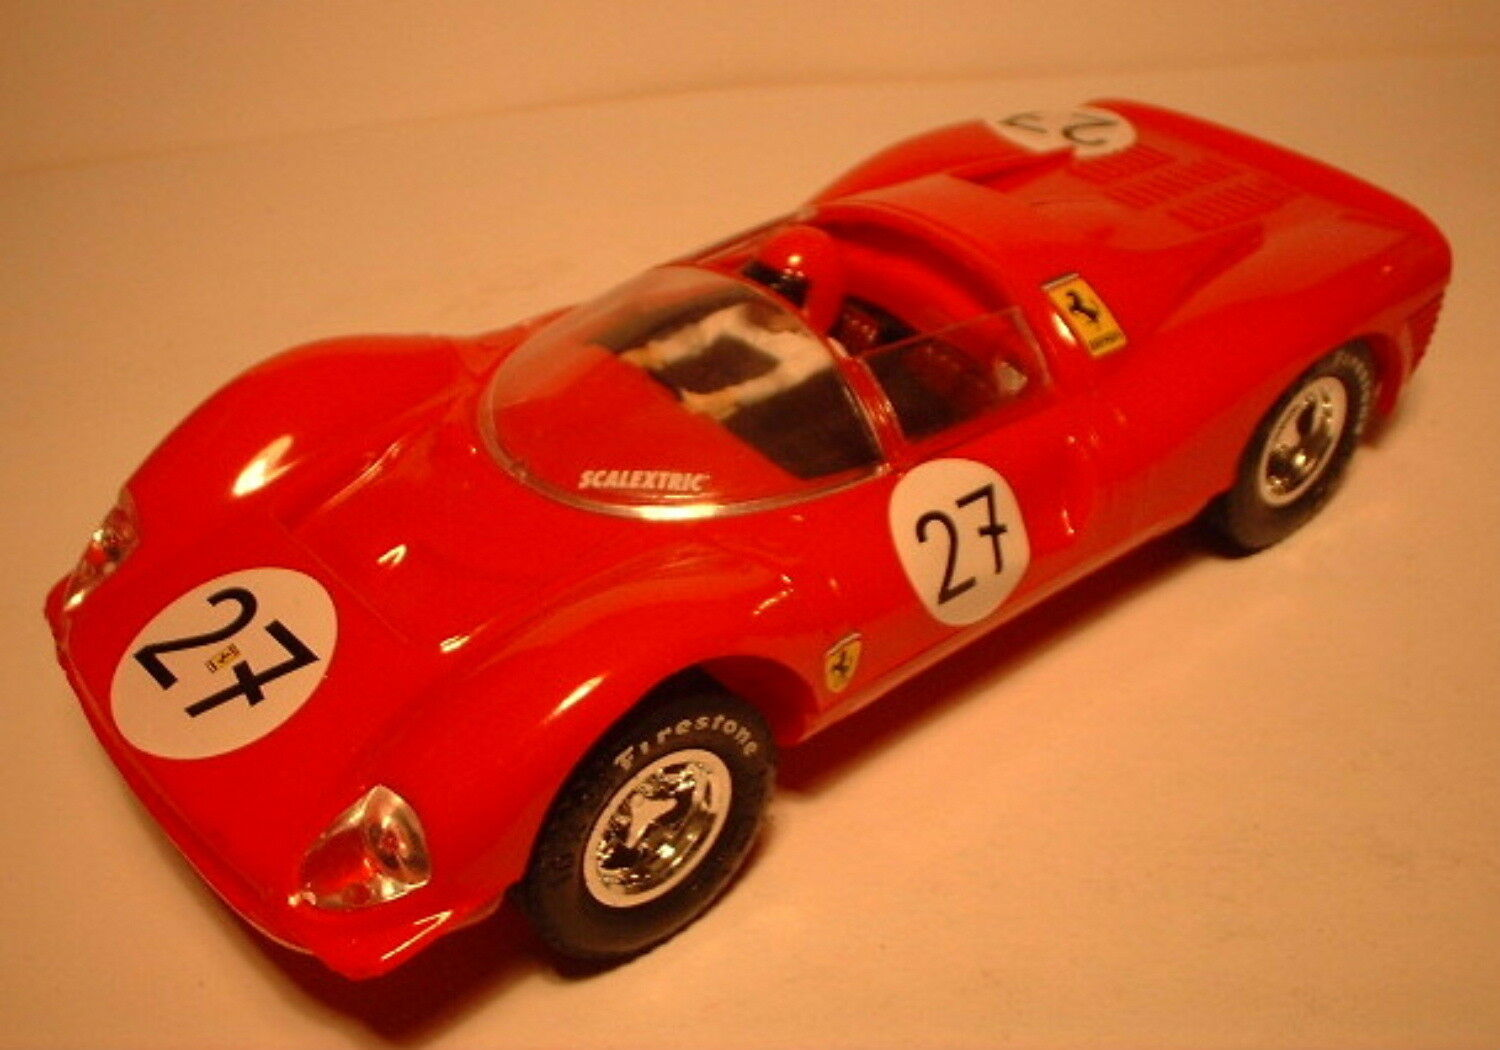 Qq SCX SPAIN SCALEXTRIC ALTAYA CARS MYTHICAL FERRARI GT 330 RED LTED. ED